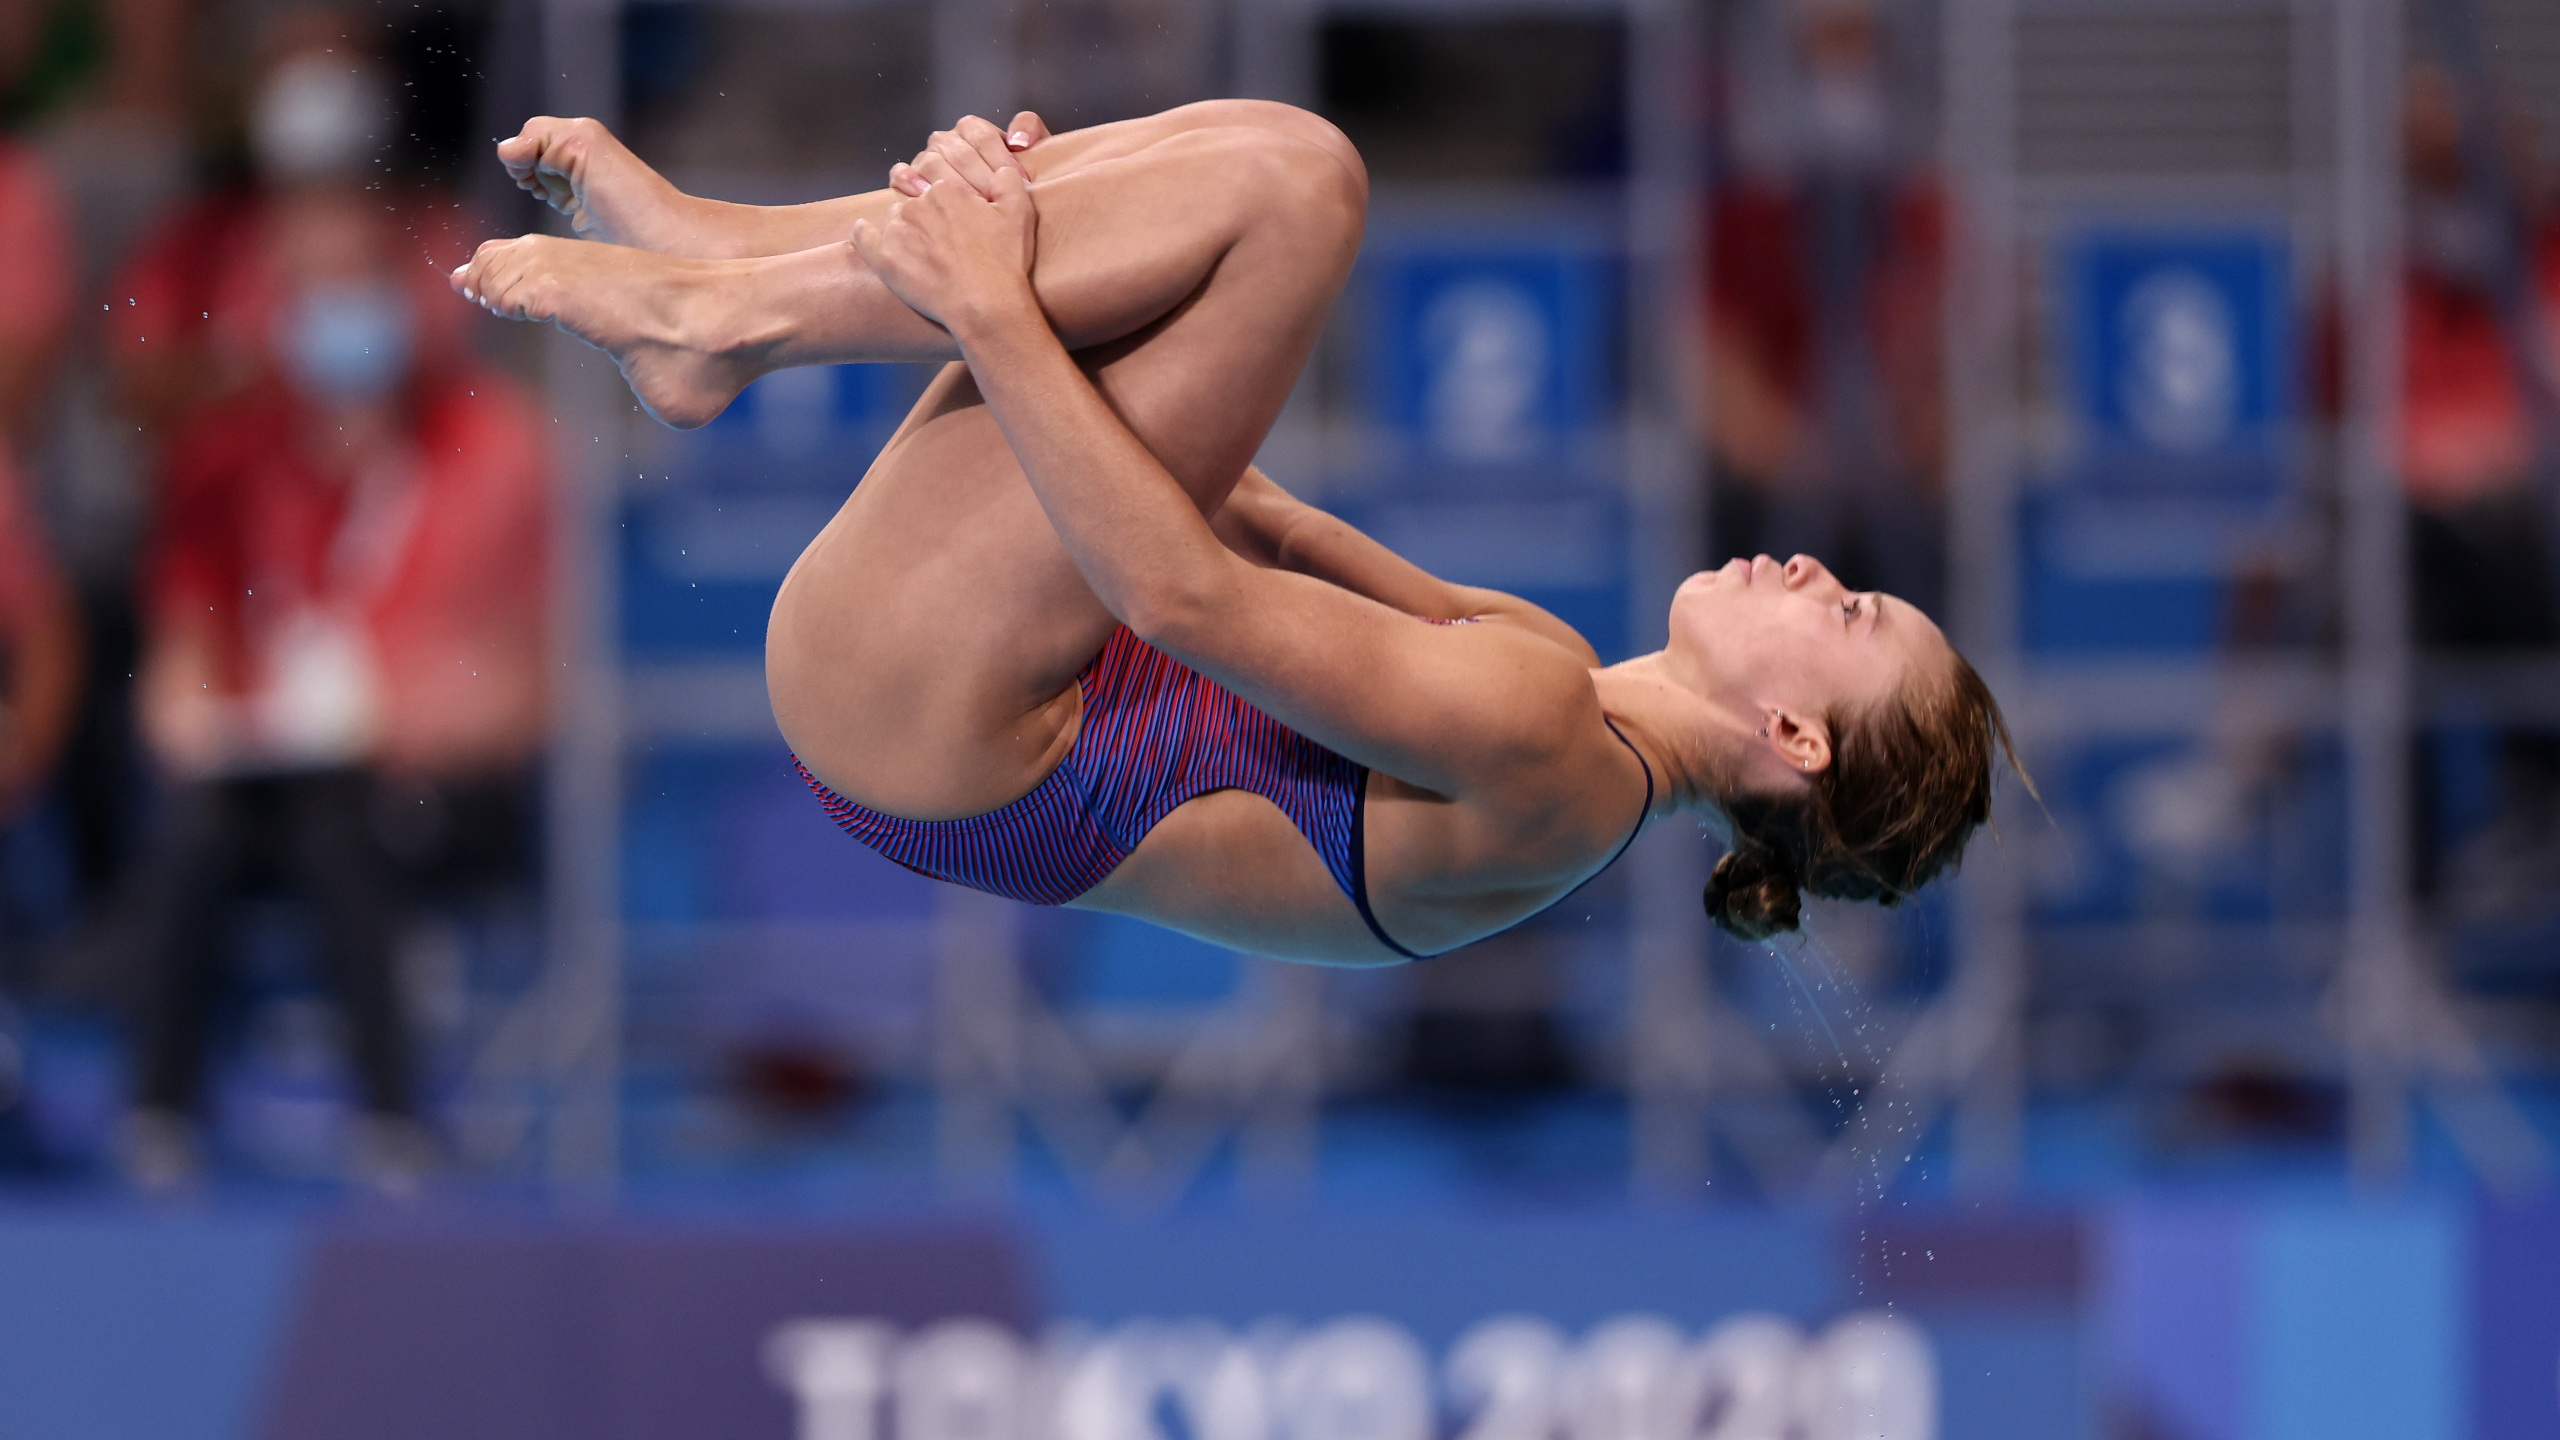 TOKYO, JAPAN - JULY 30: Hailey Hernandez of Team United States competes during the Women's 3m Springboard Preliminary round on day seven of the Tokyo 2020 Olympic Games at Tokyo Aquatics Centre on July 30, 2021 in Tokyo, Japan. (Photo by Tom Pennington/Getty Images)